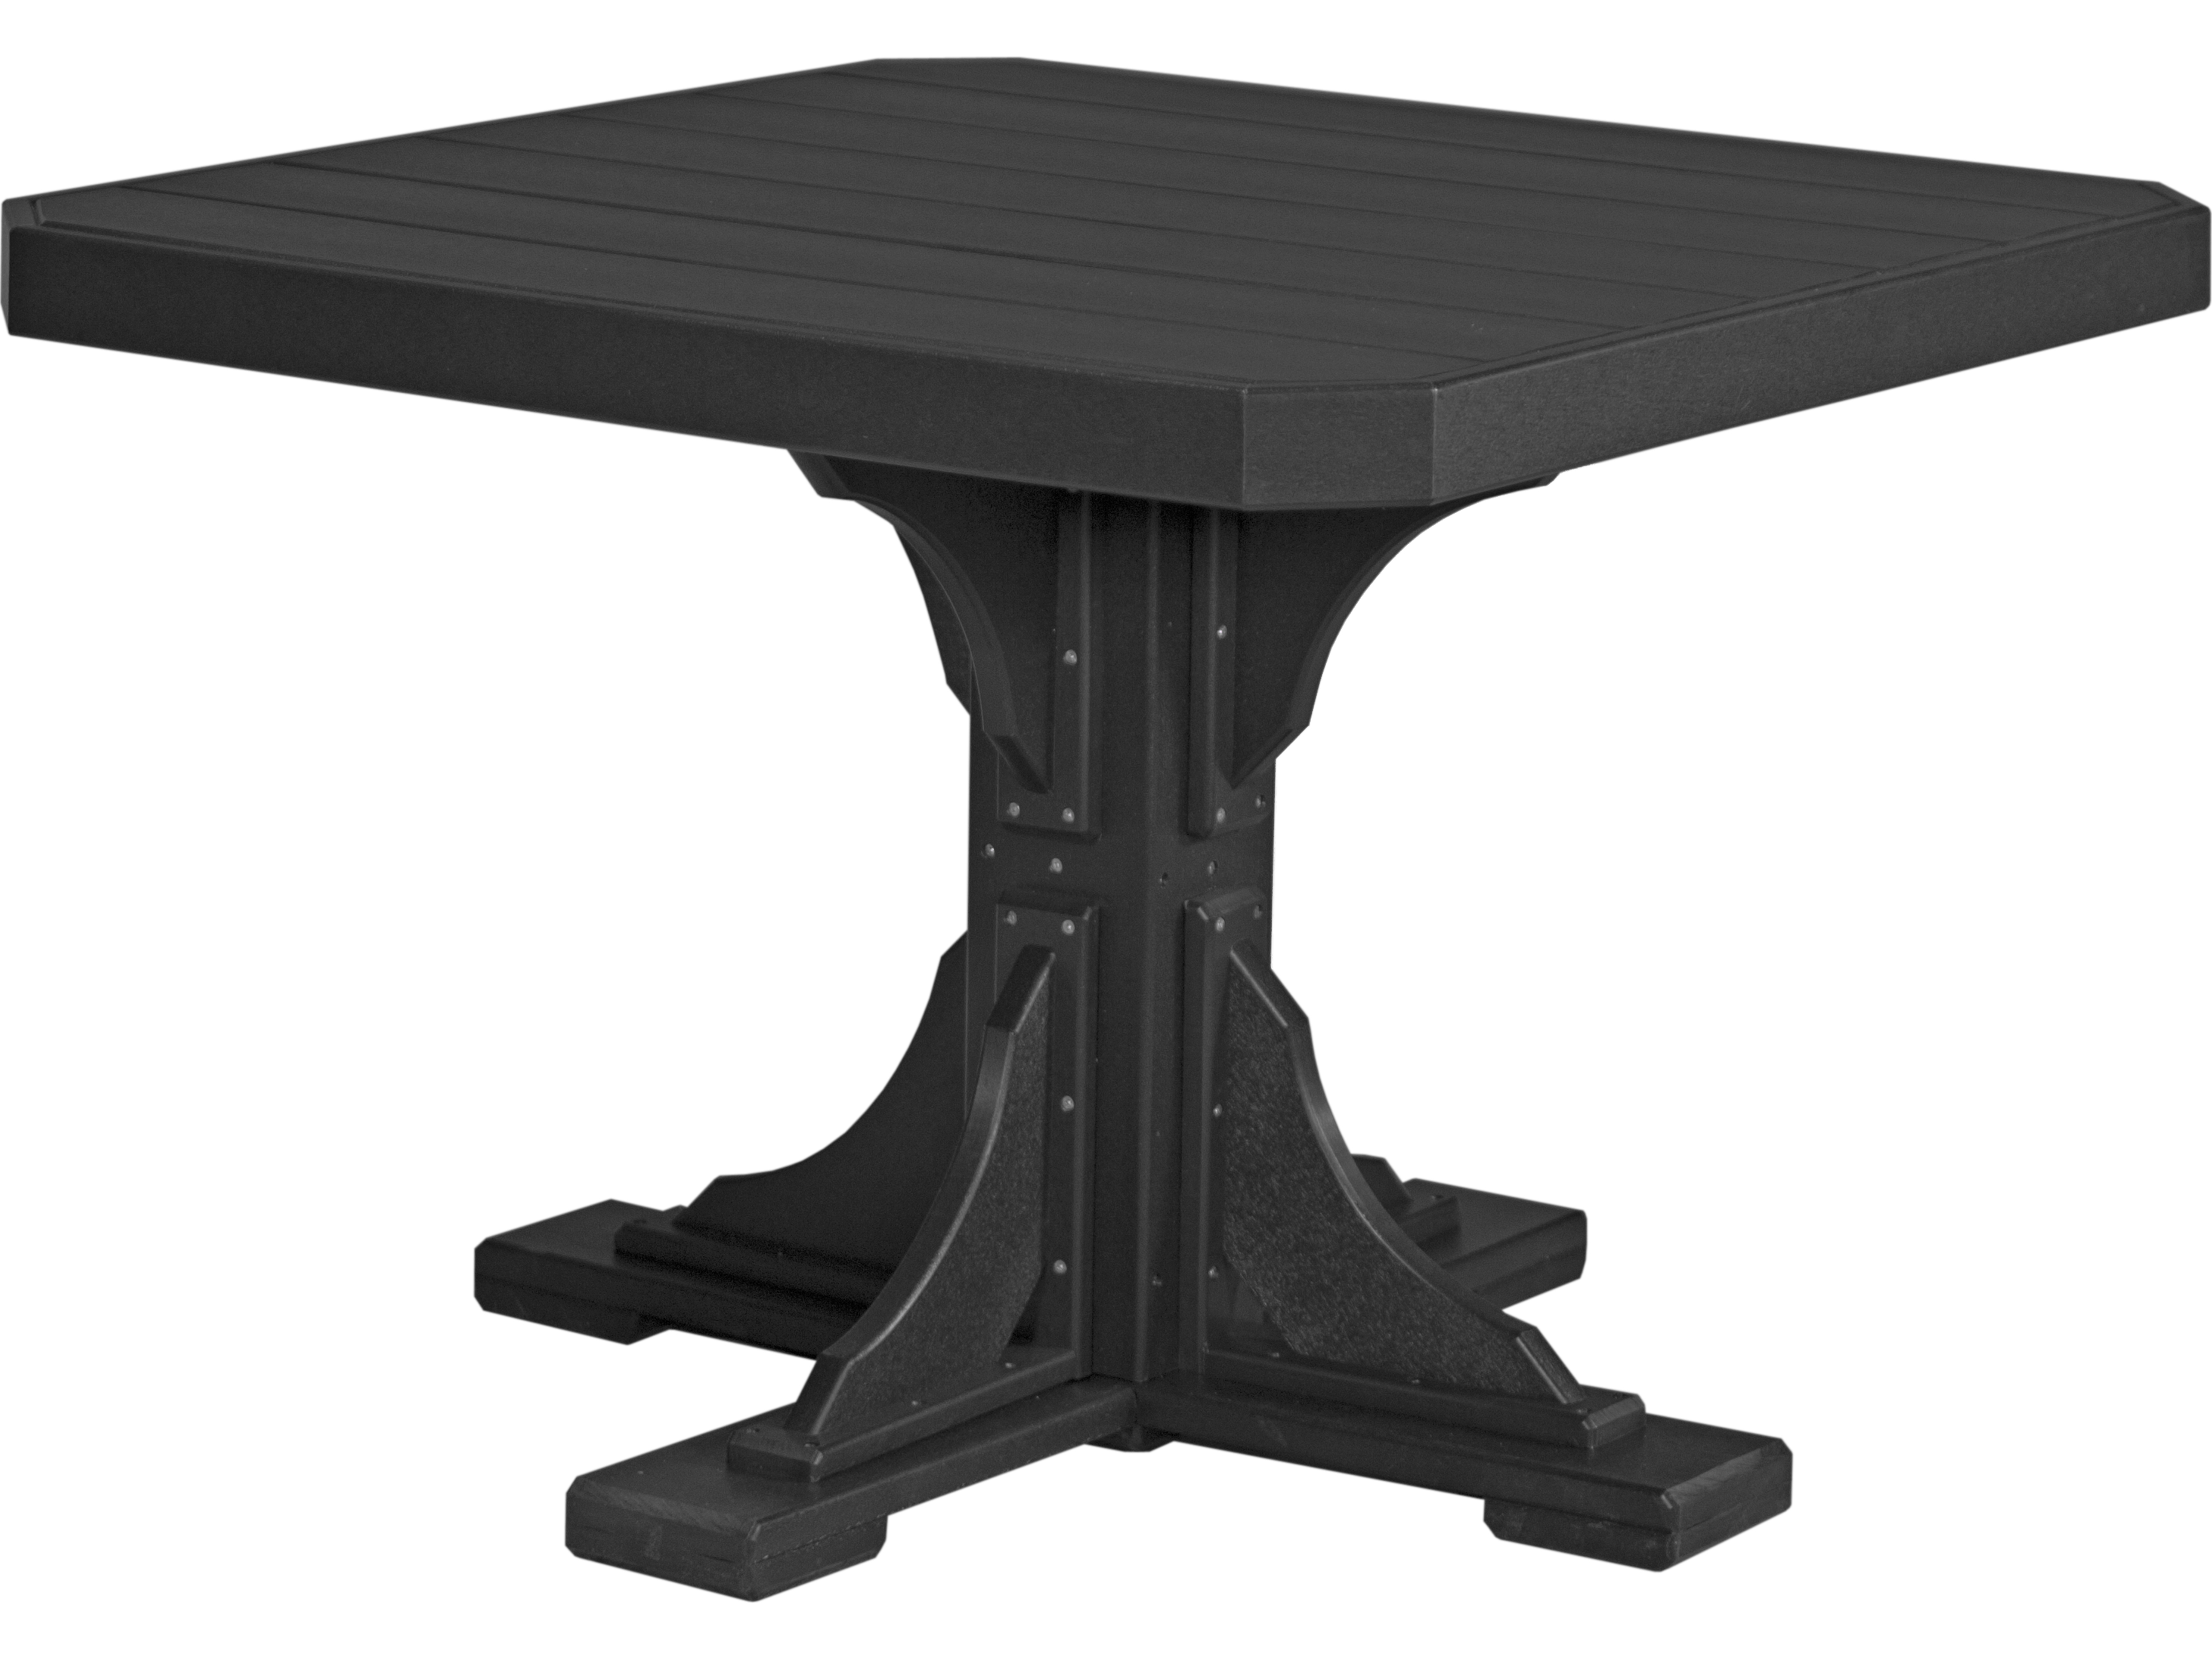 Luxcraft Recycled Plastic 41 Square Dining Height Table With Umbrella Hole P41st Dining